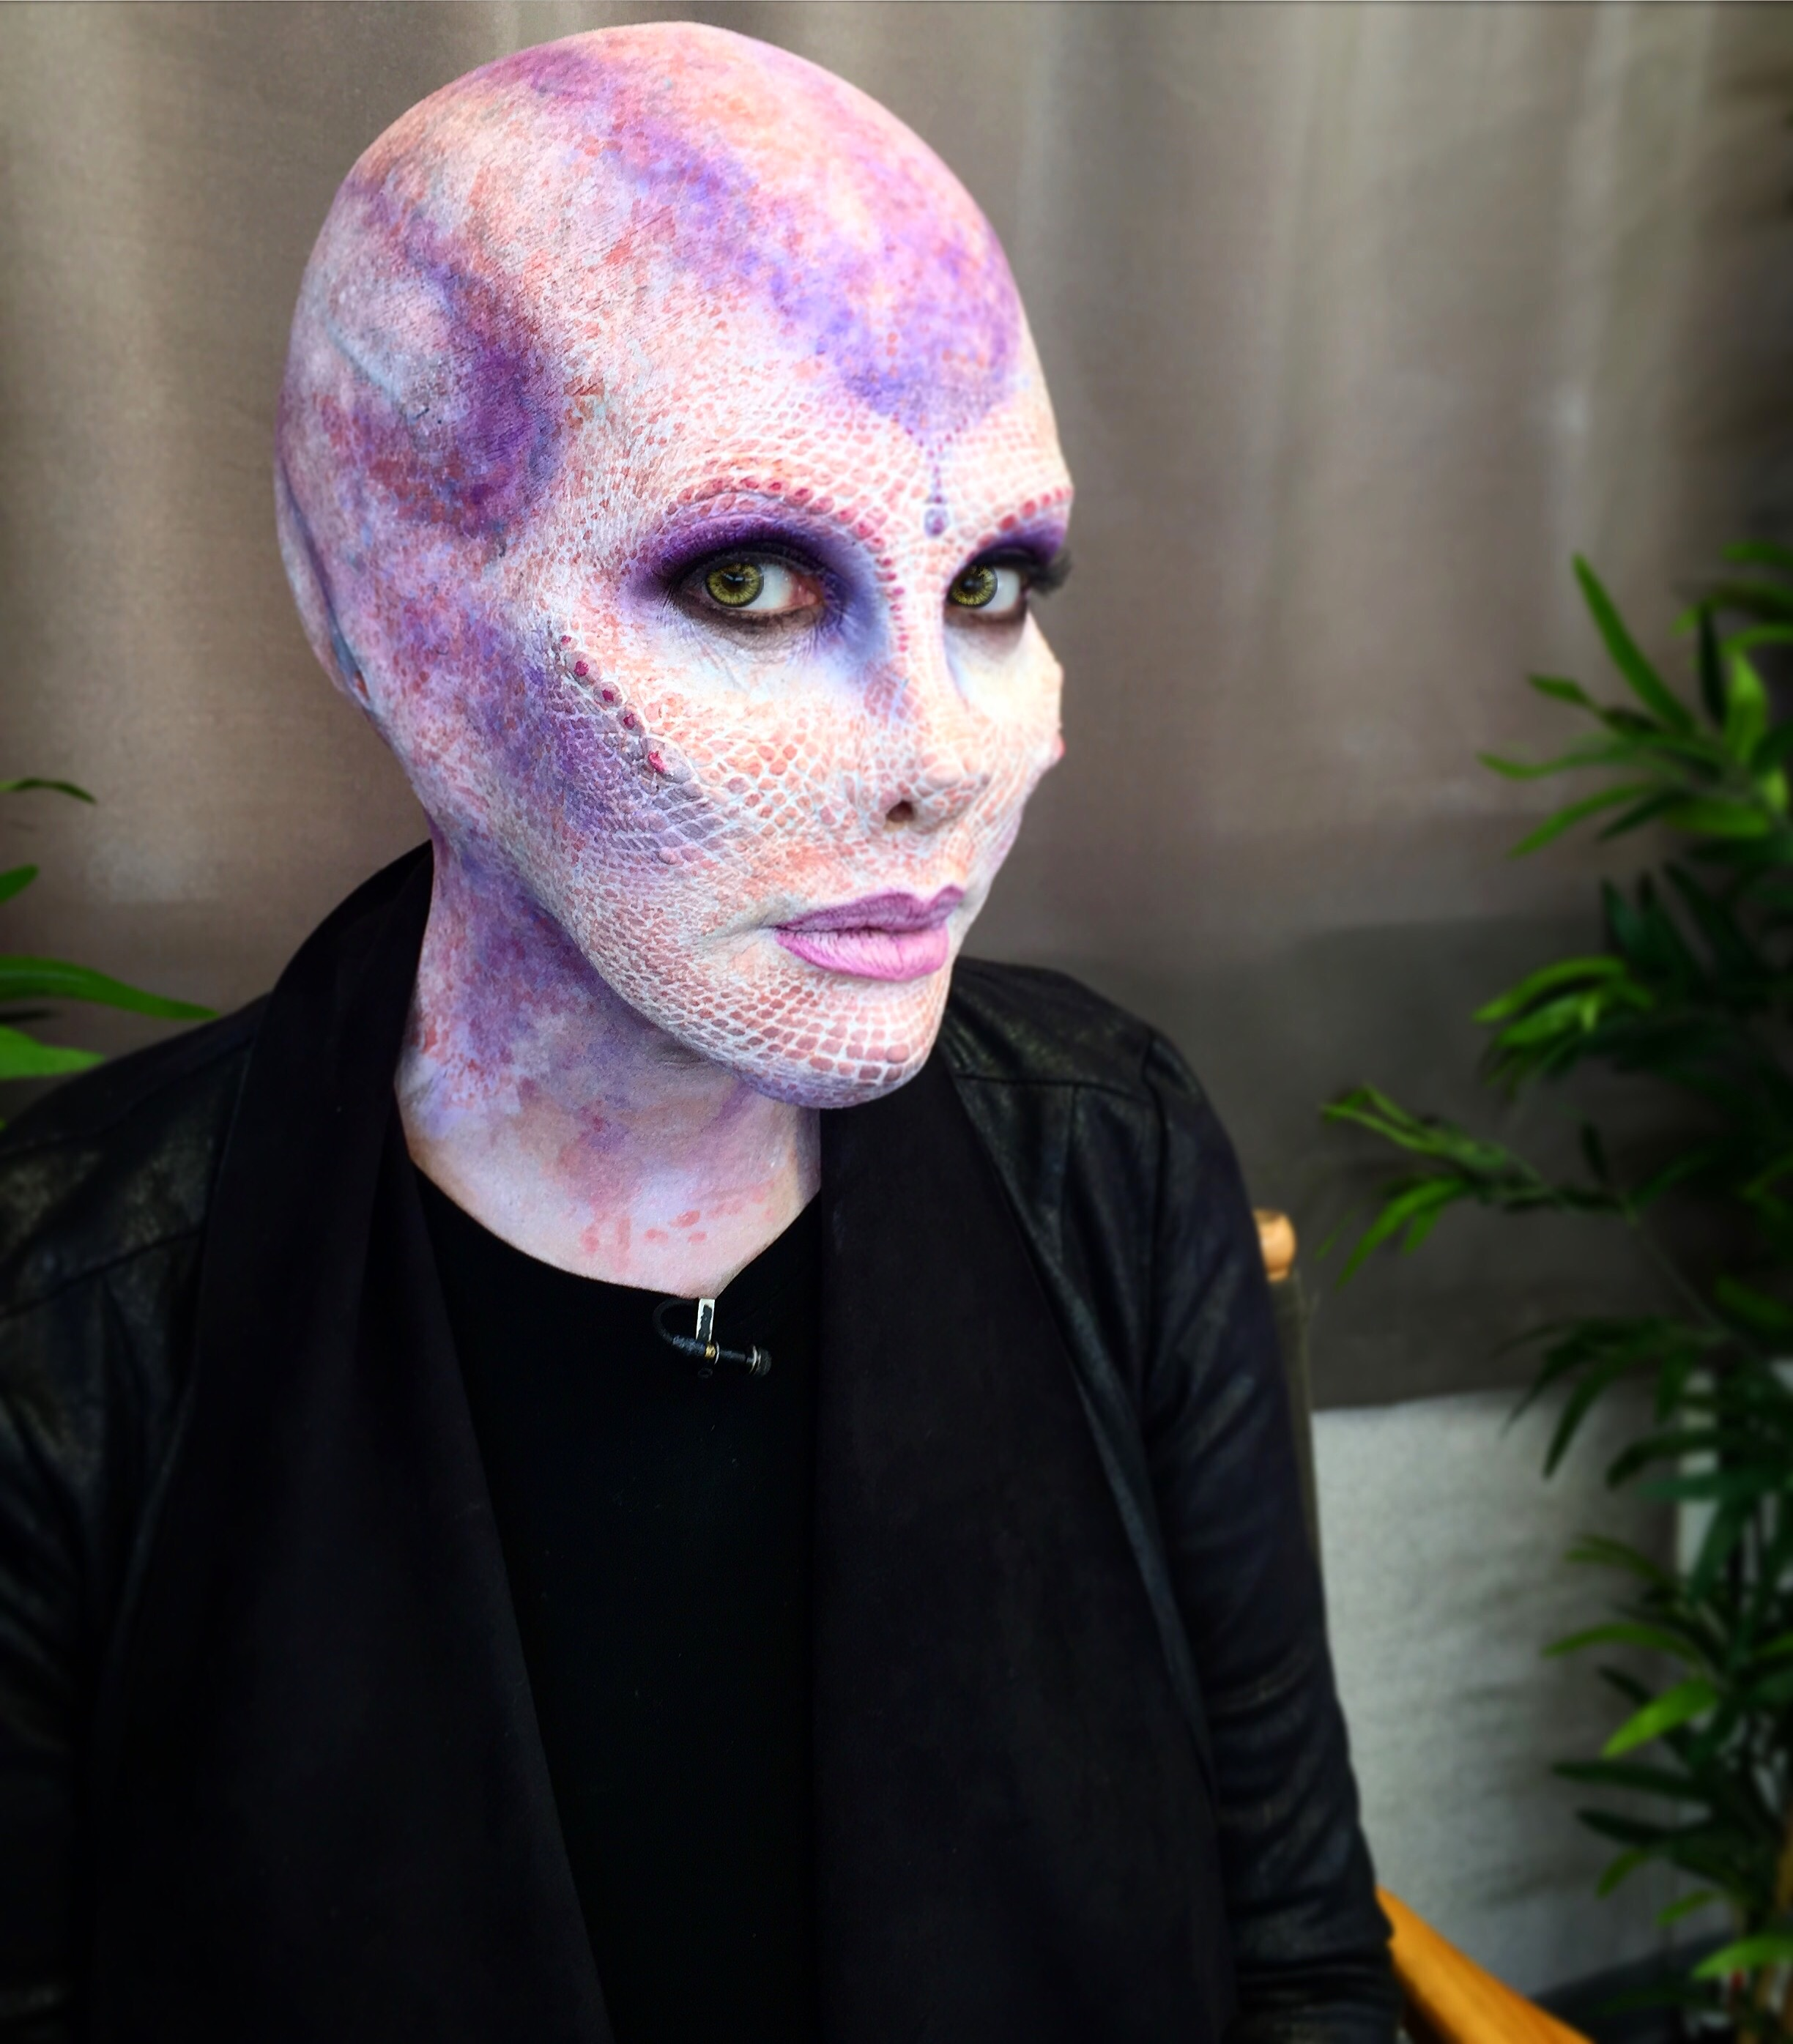 Alien makeup on Kym Douglas for Home and Family.   Makeup Artists: Hannah Reed and Shelby Patton